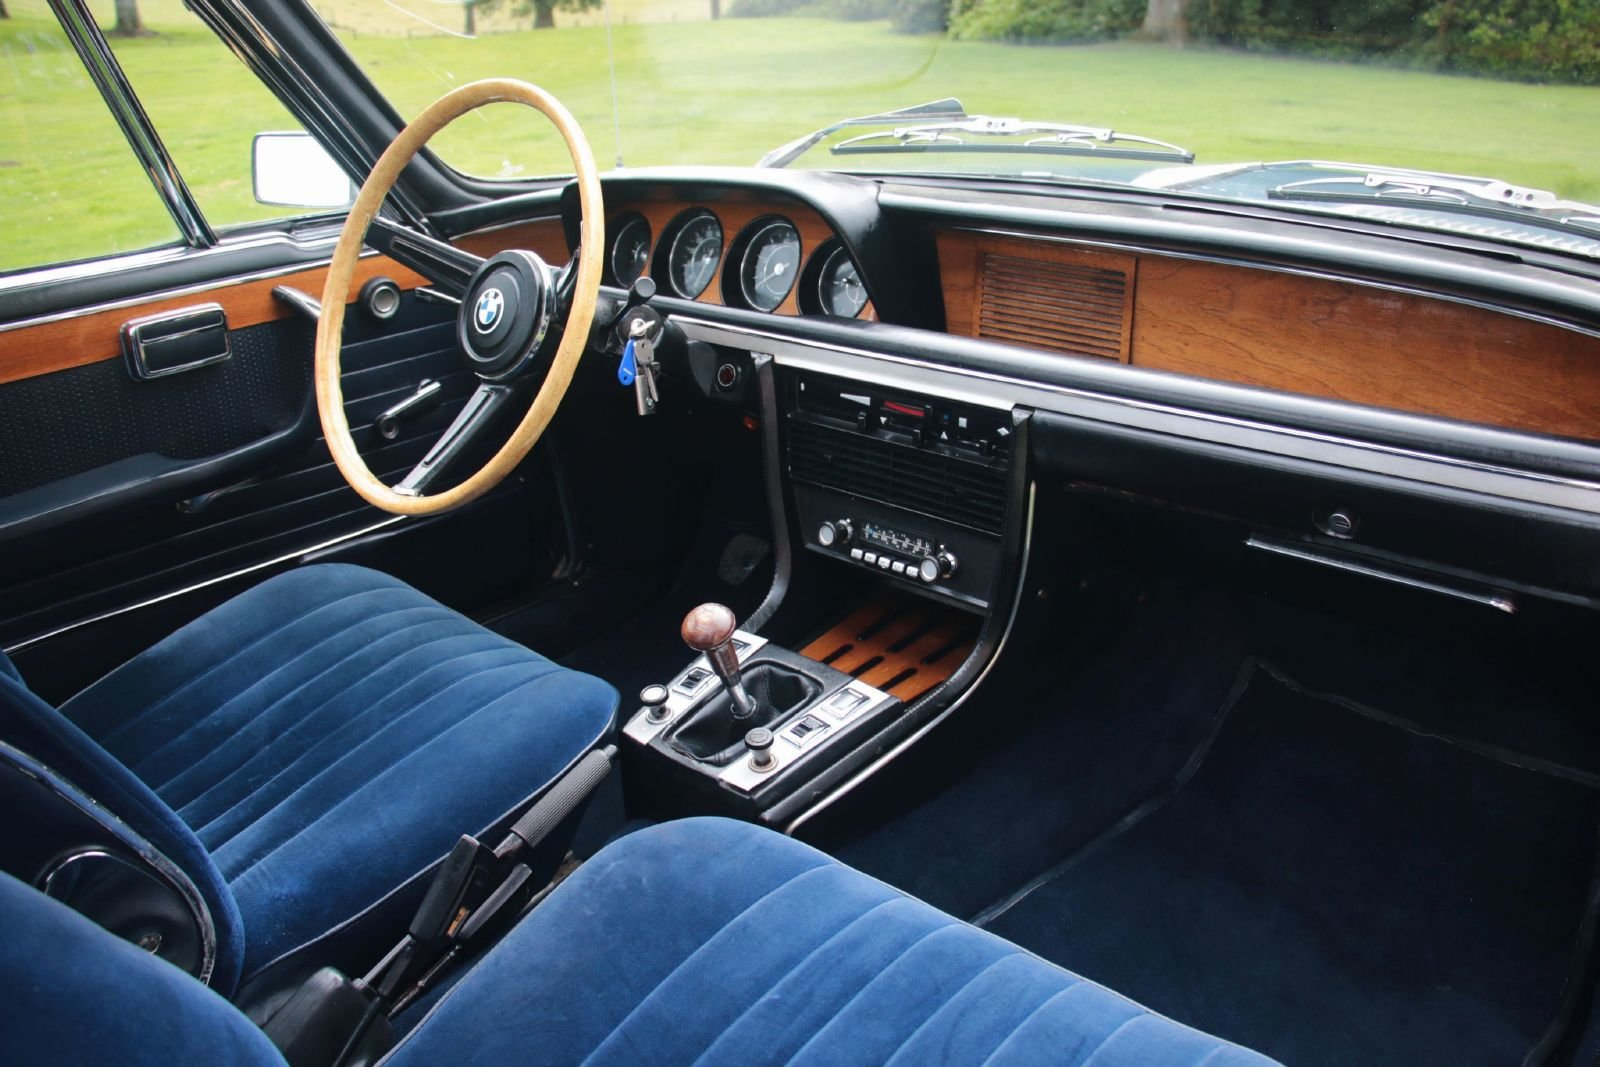 1971 E9 bmw 3.0 cs coupe lhd csl csi For Sale (picture 4 of 6)